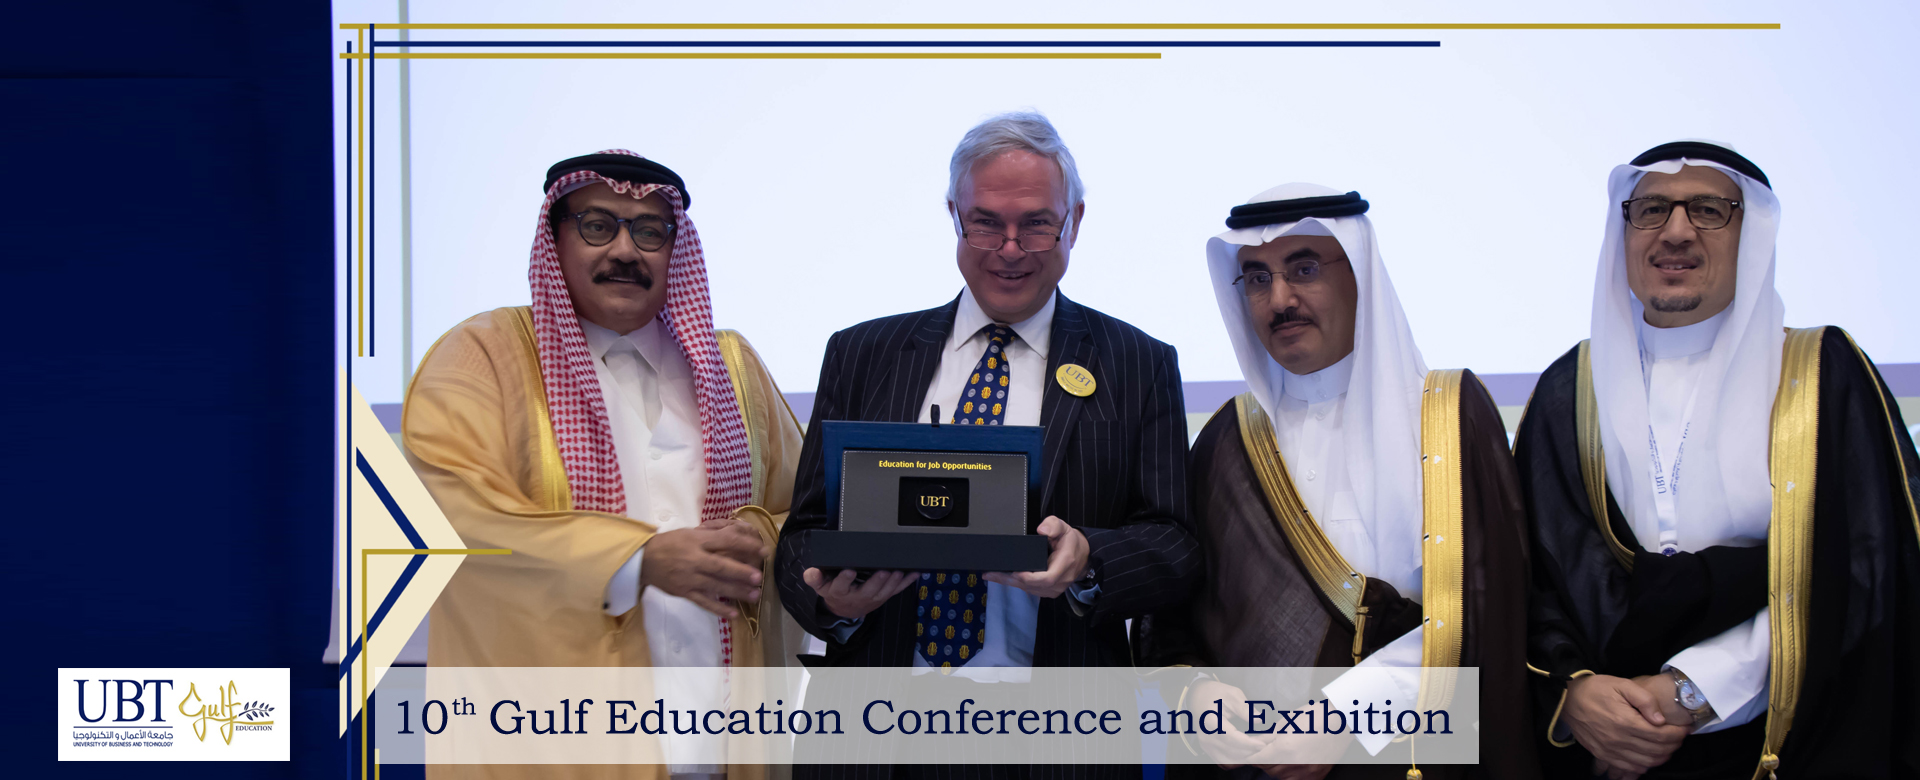 GEC Gulf education Conference